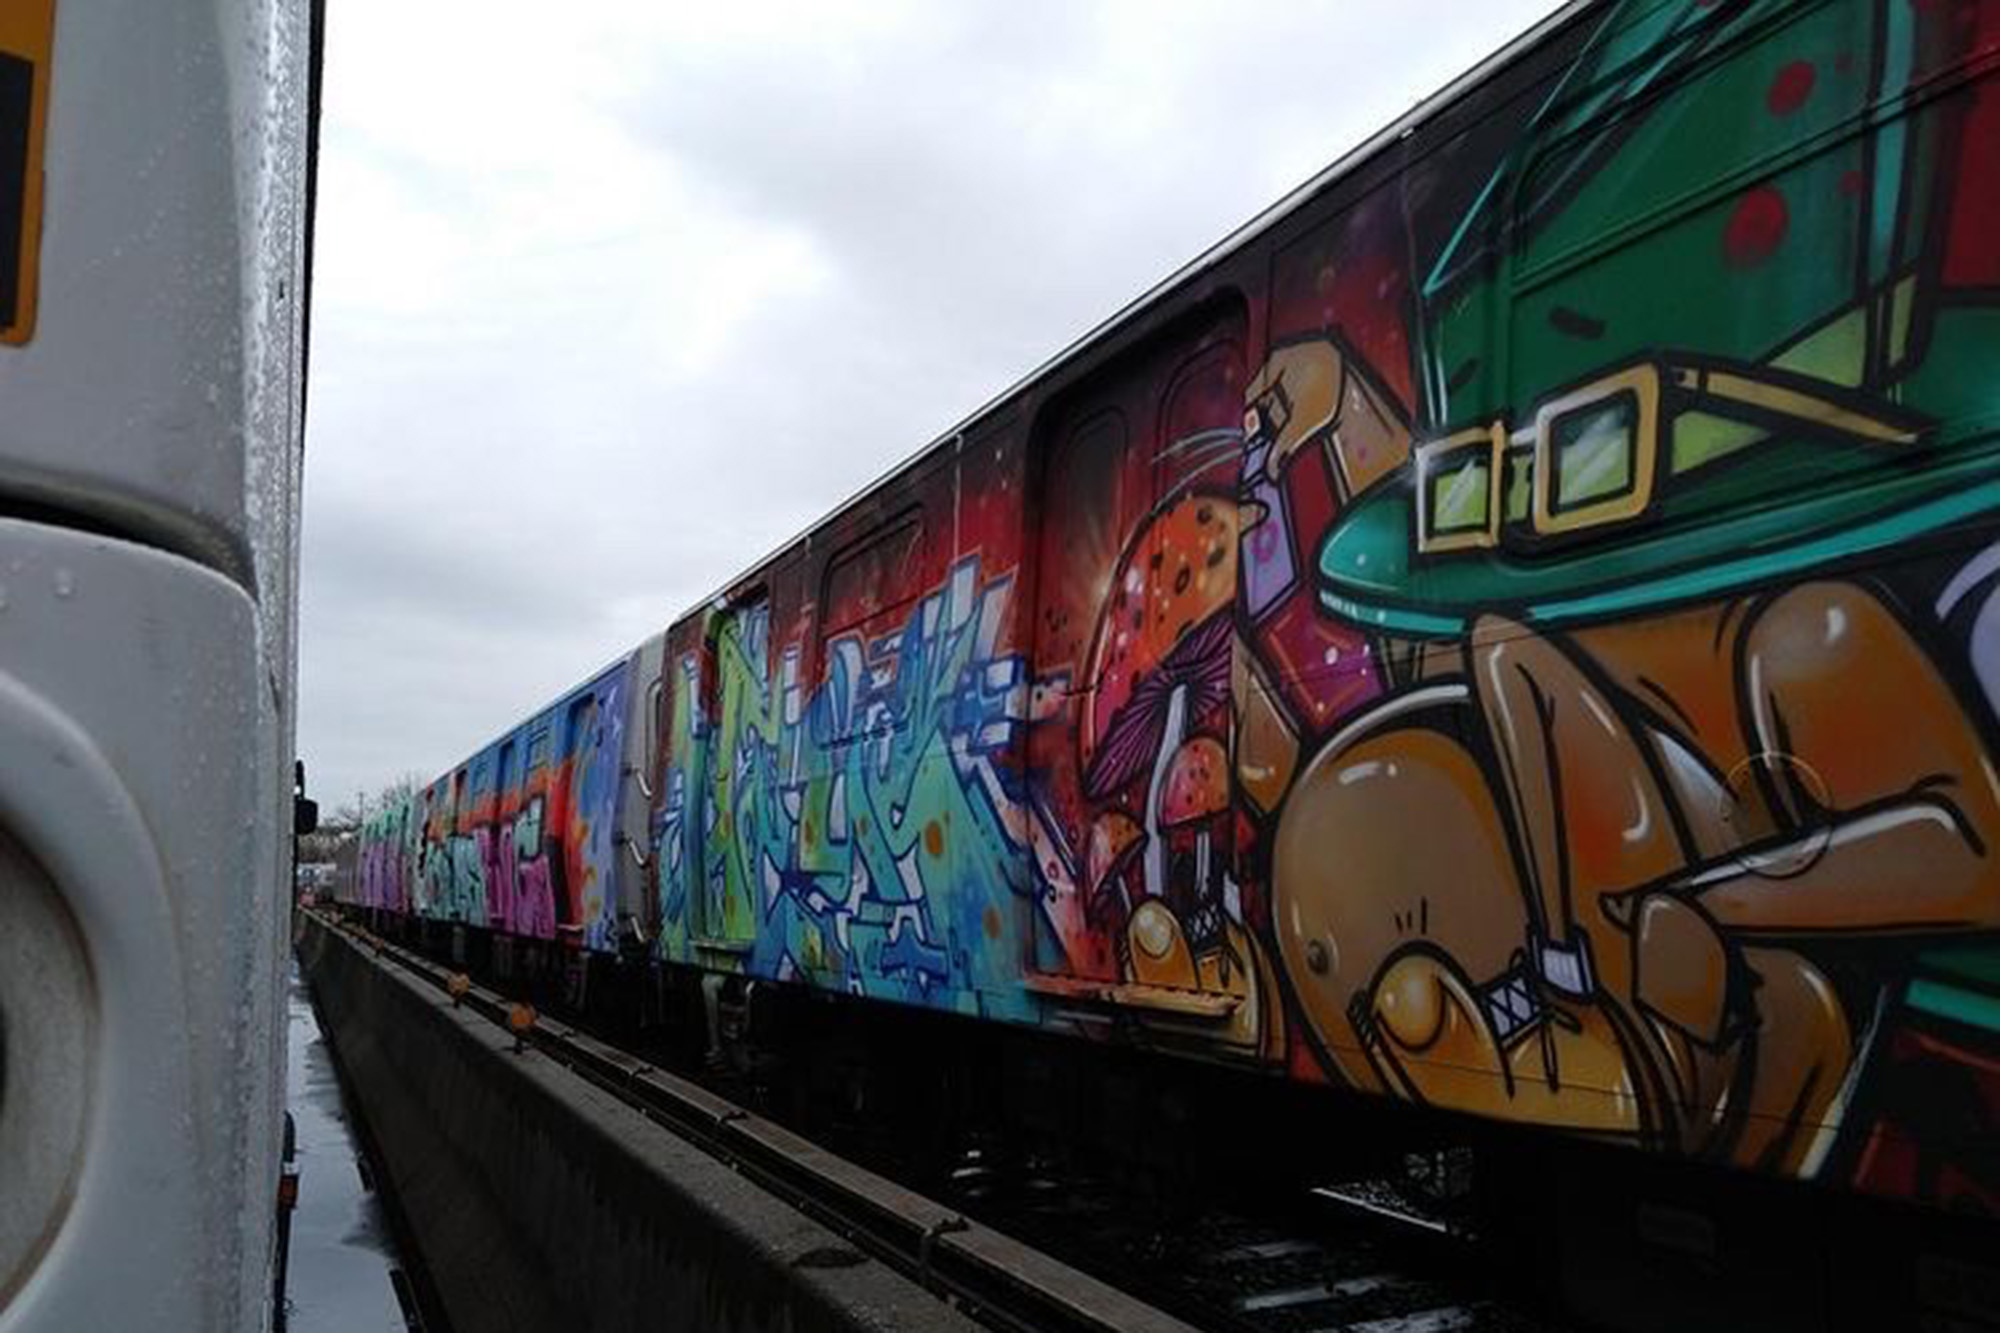 Vandals cover 24 NYC subway cars along six lines with graffiti